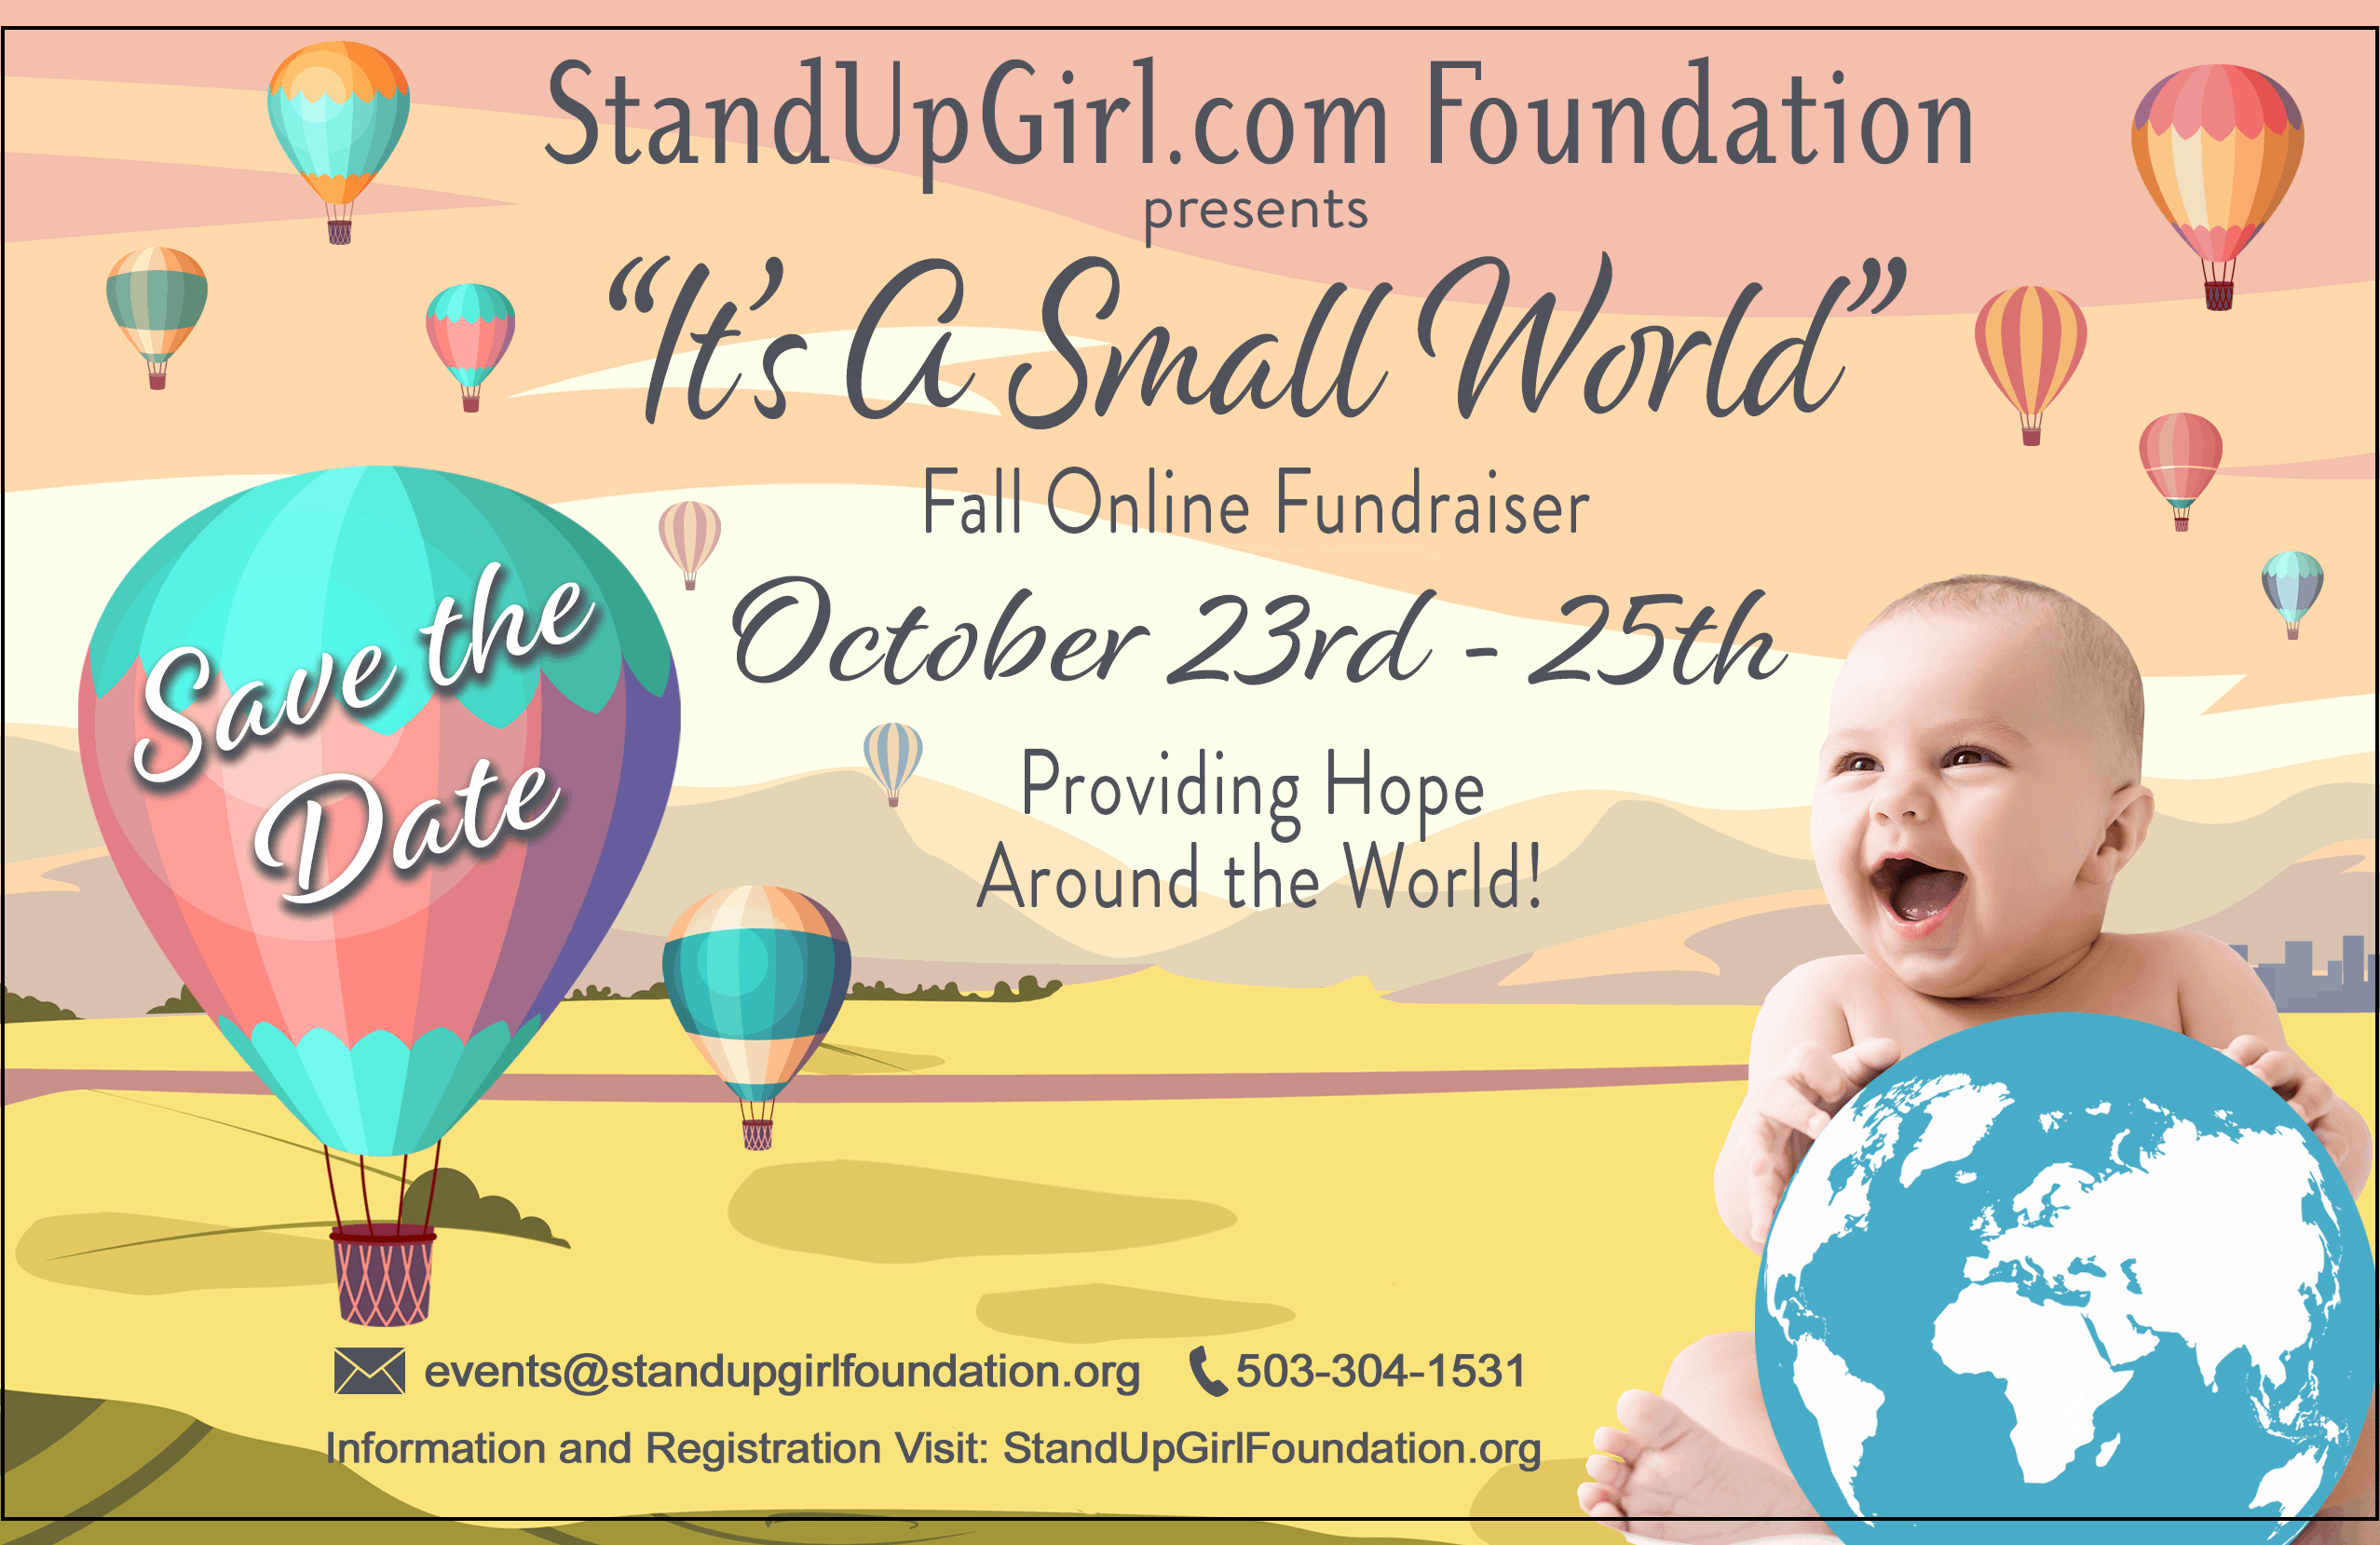 I't a small world virtual event standupgirl.com foundation